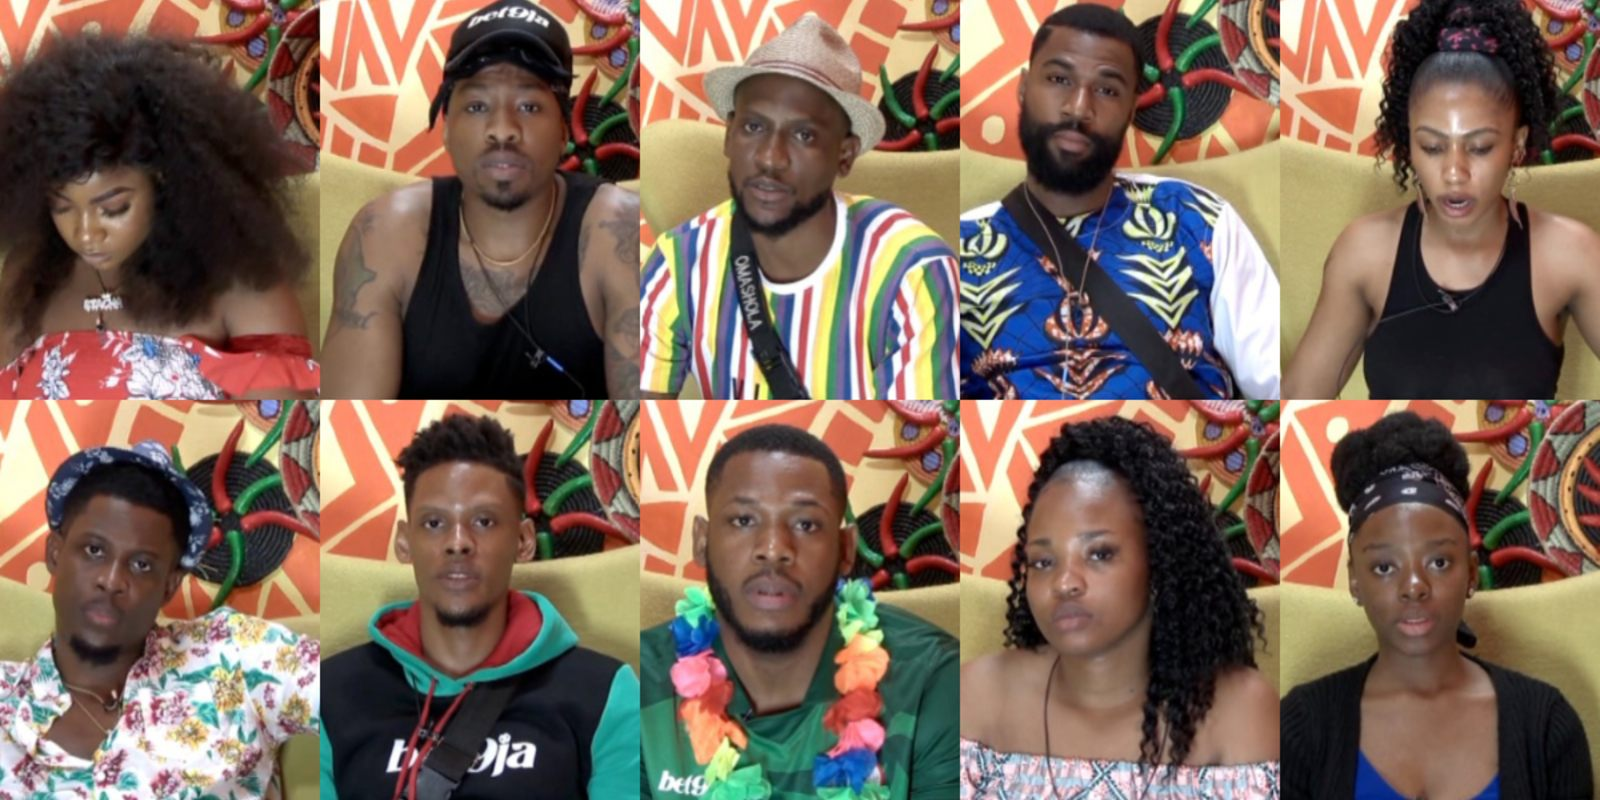 BBNaija: How ex-housemates are preparing viewers for a reunion show